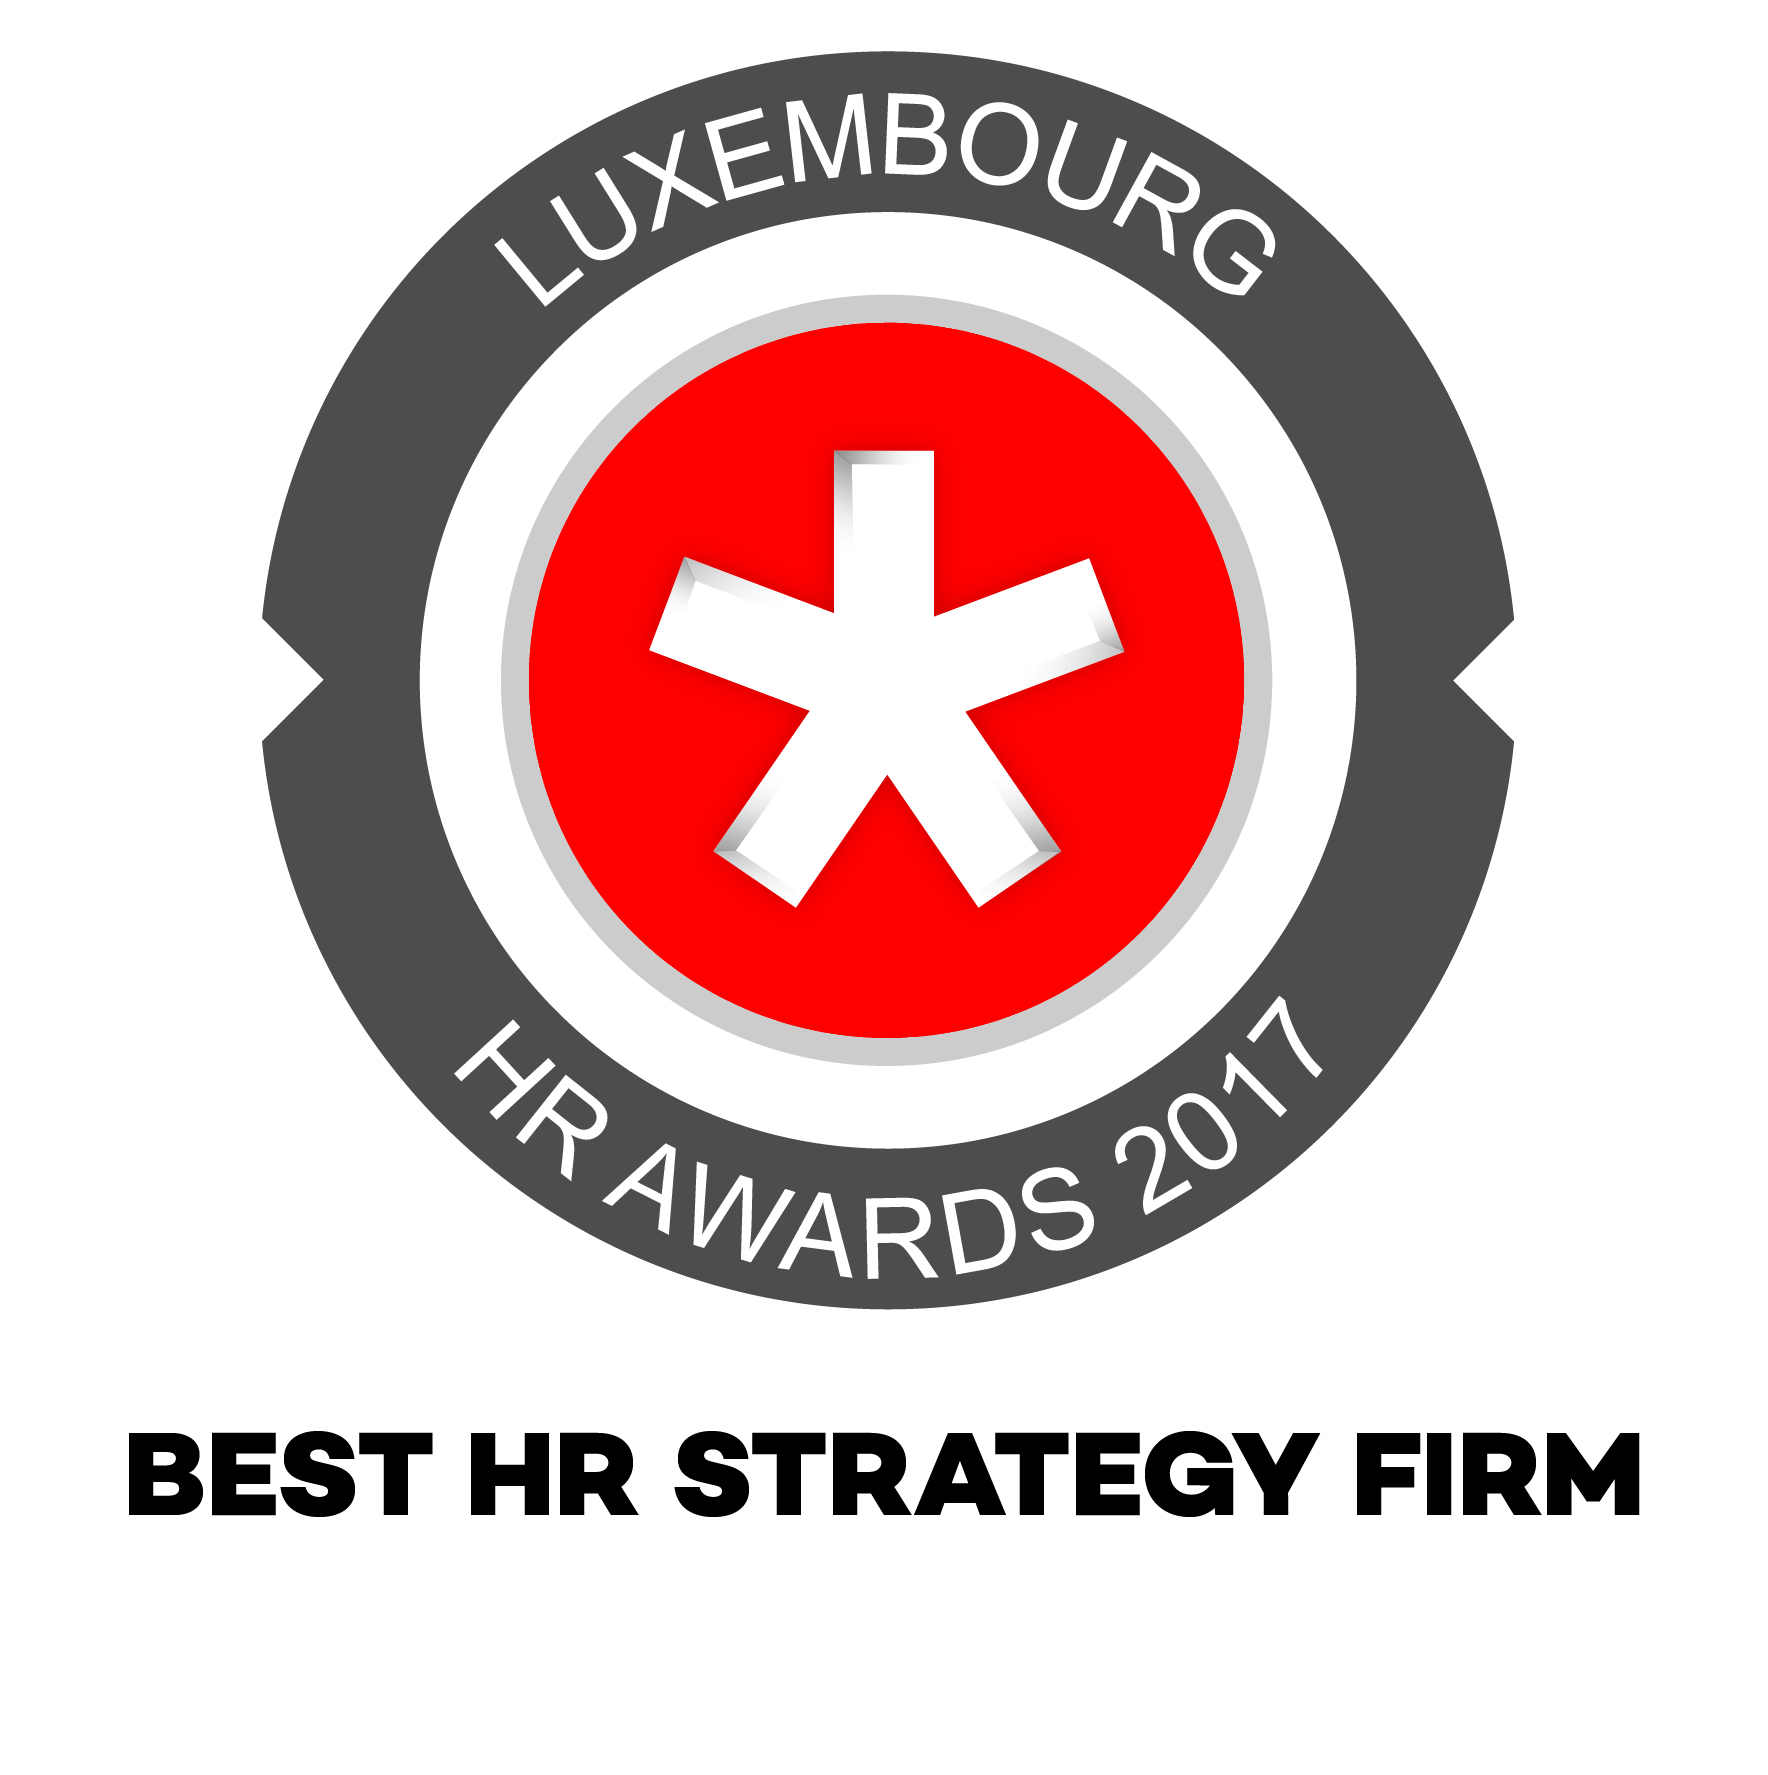 Best HR Strategy Firm